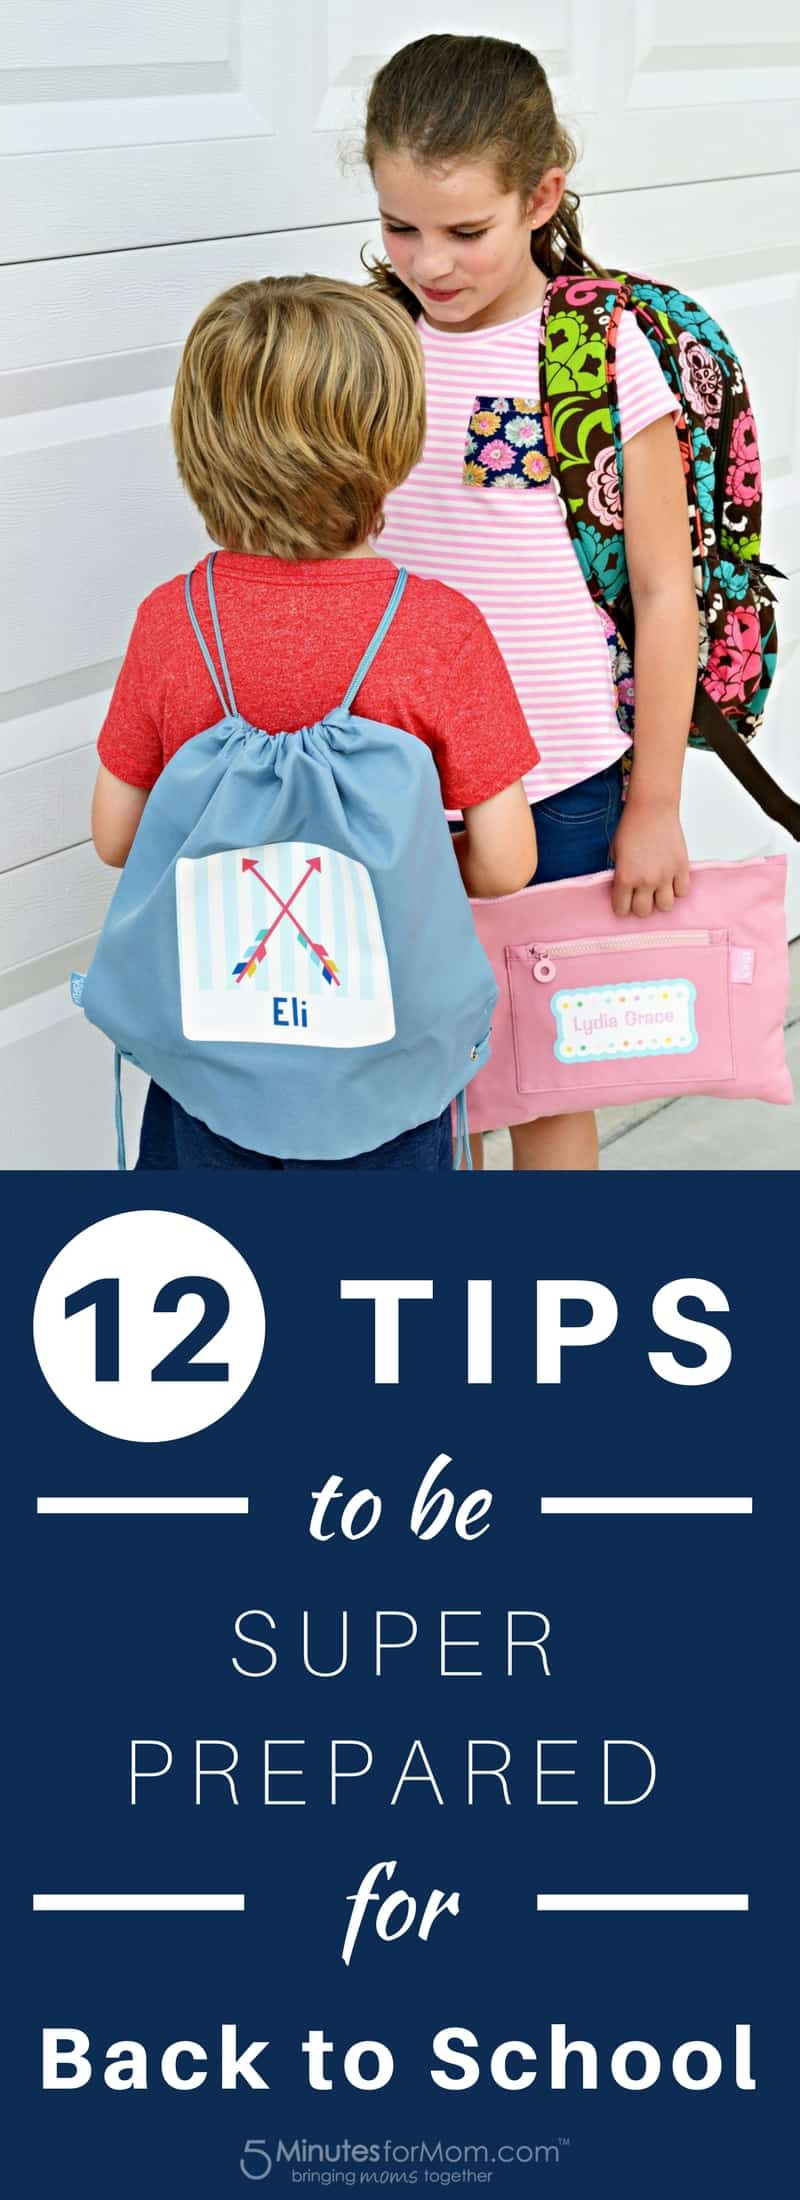 12 Tips to Be Super Prepared for Back to School